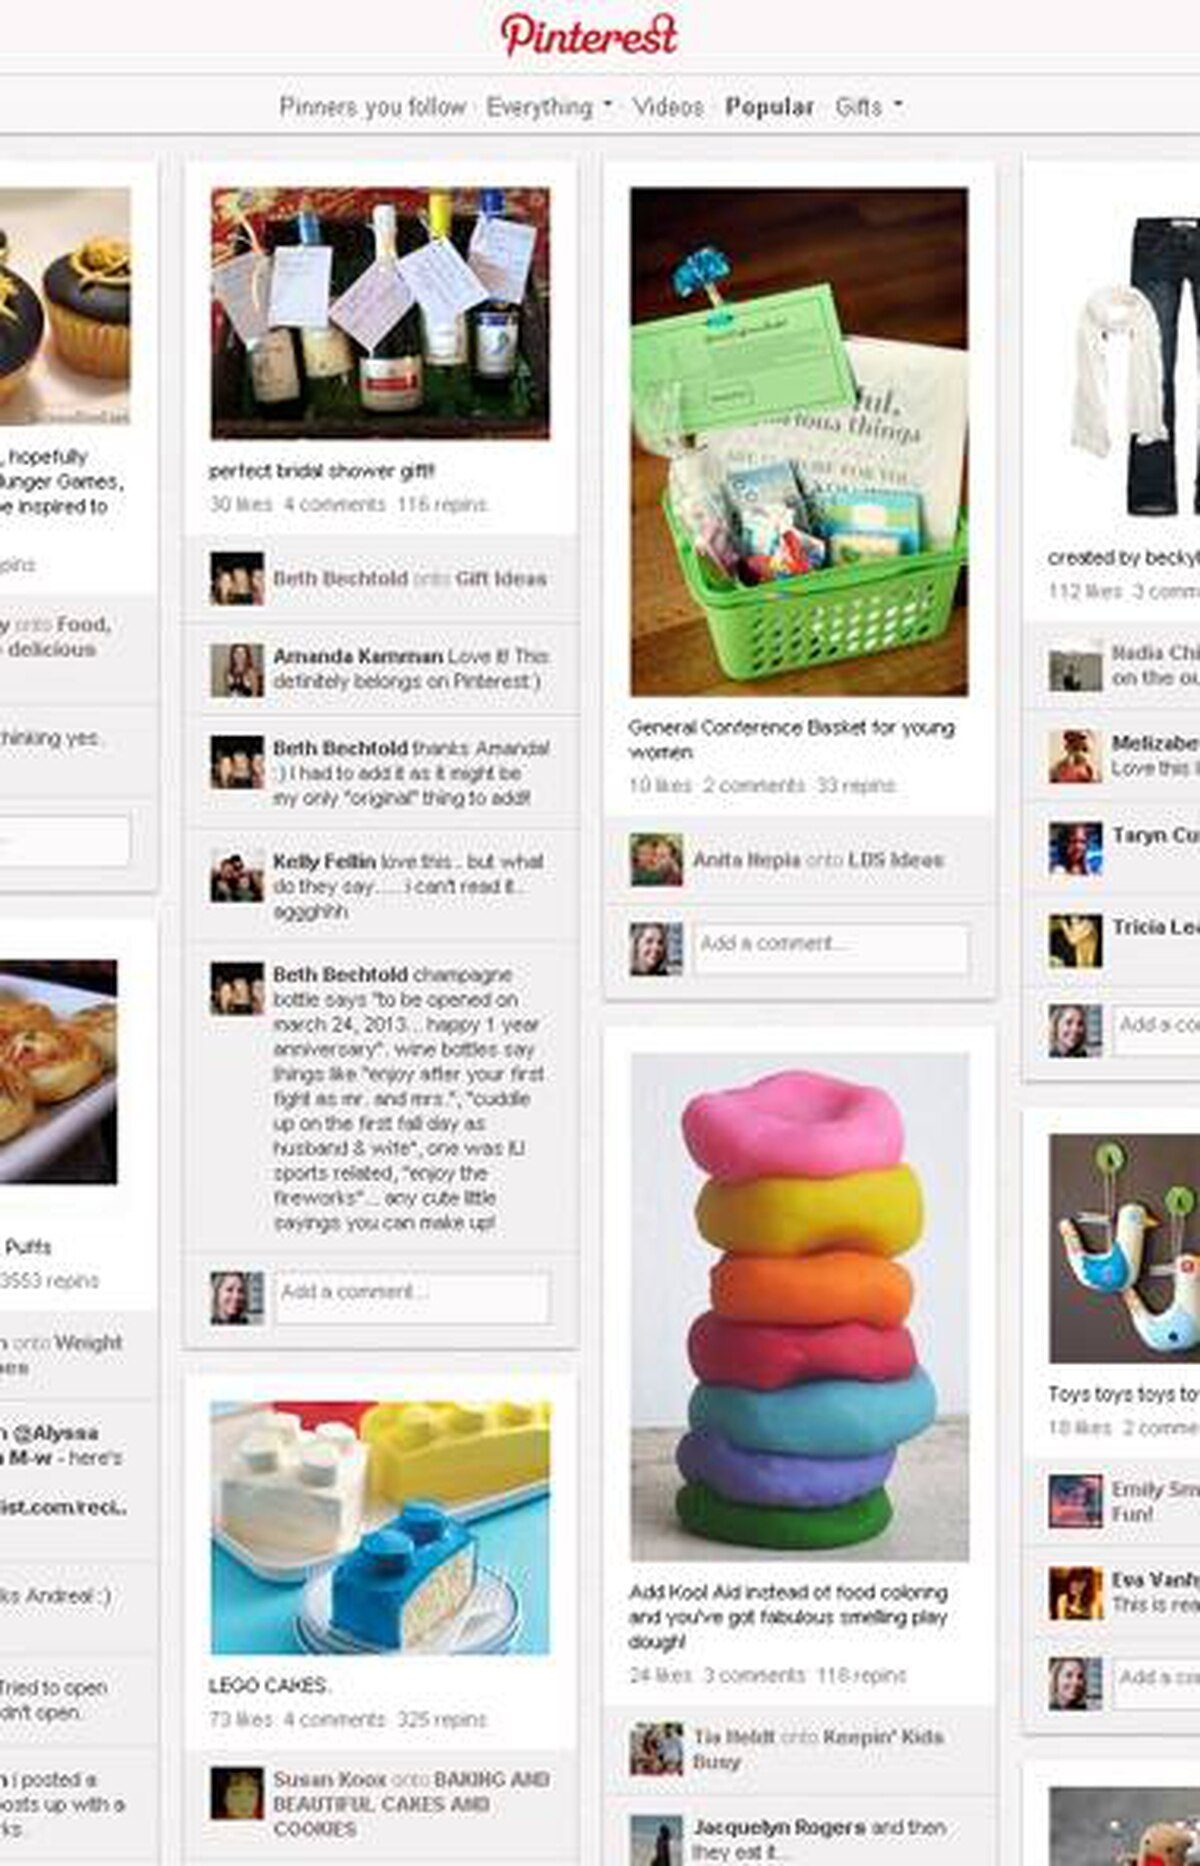 PINTEREST WHAT: A virtual pinboard that lets people easily assemble pictures and other bits of content online. The nature of the content makes it e-commerce-friendly, and tremendous growth over the past six months puts it at the heart of the social networking revolution. FUNDING: $37.5-million from Andreessen Horowitz, Bessemer Venture Partners and others. An investor told BusinessInsider last month the company was now worth $1-billion, up from the $200-million valuation it claimed in October at its last funding round. KEY FACT: User base has grown to 19 million from 2 million in just six months, according to comScore Inc. WHO: Founders Paul Sciarra and Ben Silbermann met at Yale. Half the 200 e-mails Silbermann sent to his friends asking them to join Pinterest at its launch went unopened.